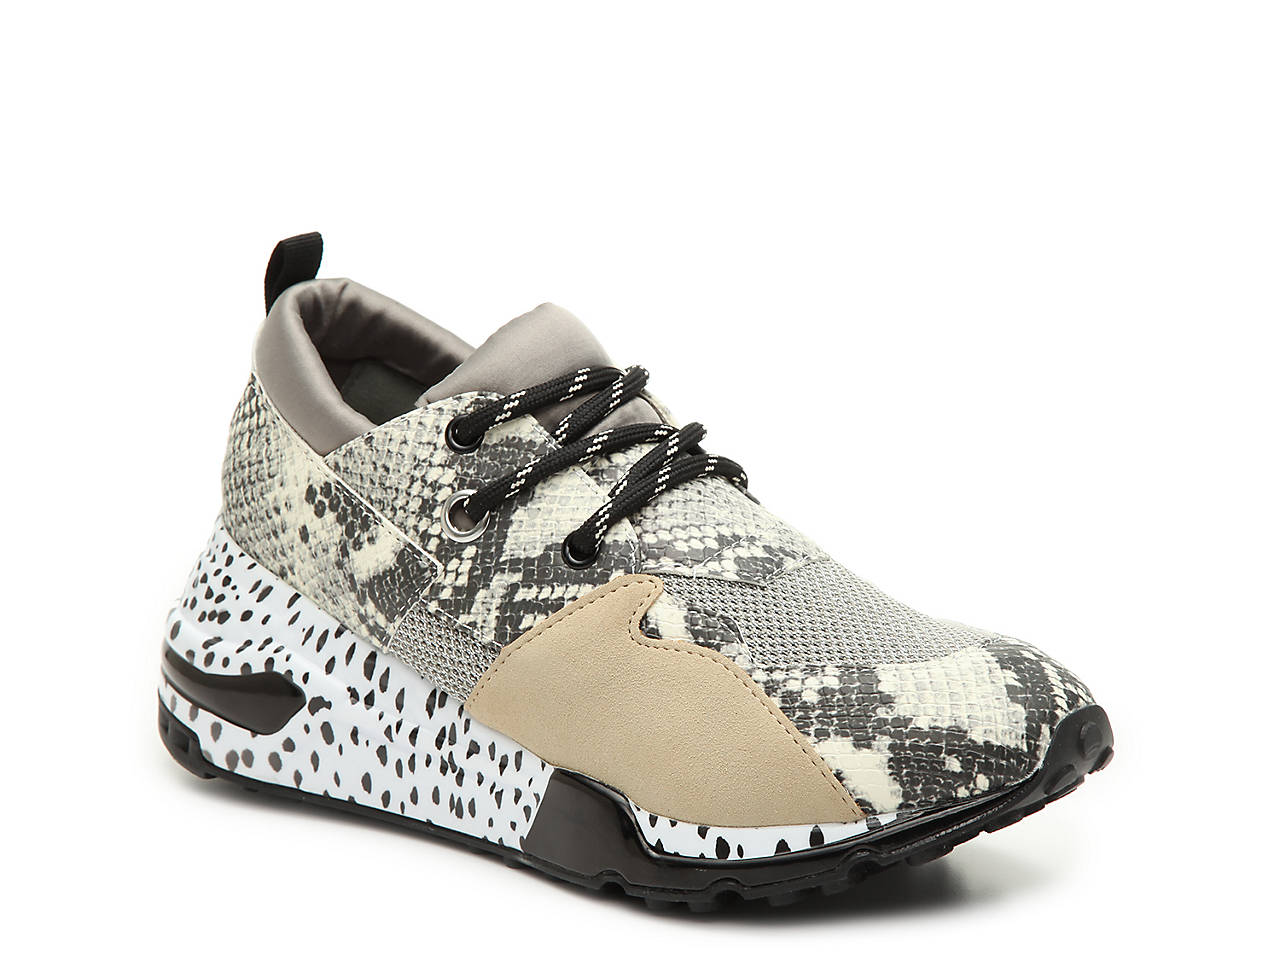 f1c634e5042 Steve Madden Cliff Sneaker Women s Shoes